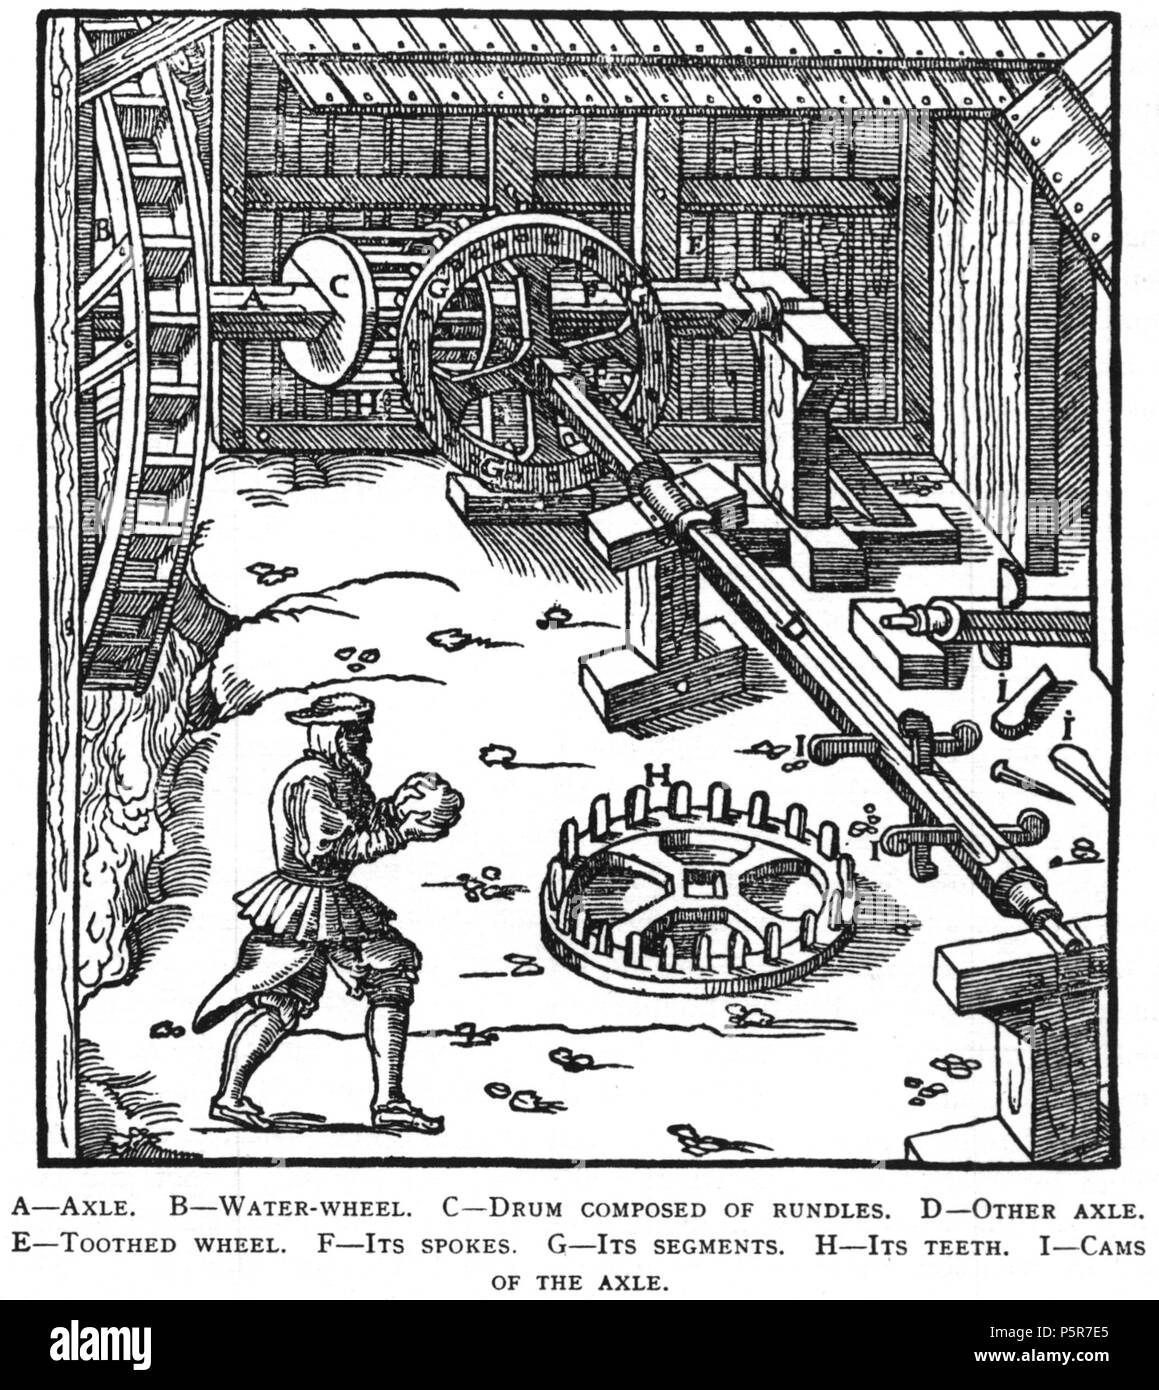 N/A. Woodcut illustration from De re metallica by Georgius Agricola. This is a 300dpi scan from the 1950 Dover edition of the 1913 Hoover translation of the 1556 reference. The Dover edition has slightly smaller size prints than the Hoover (which is a rare book). The woodcuts were recreated for the 1913 printing. Filenames (except for the title page) indicate the chapter (2, 3, 5, etc.) followed by the sequential number of the illustration. 2 May 2005, 07:11:40. TCO (talk) 223 Book9-8 - Stock Image